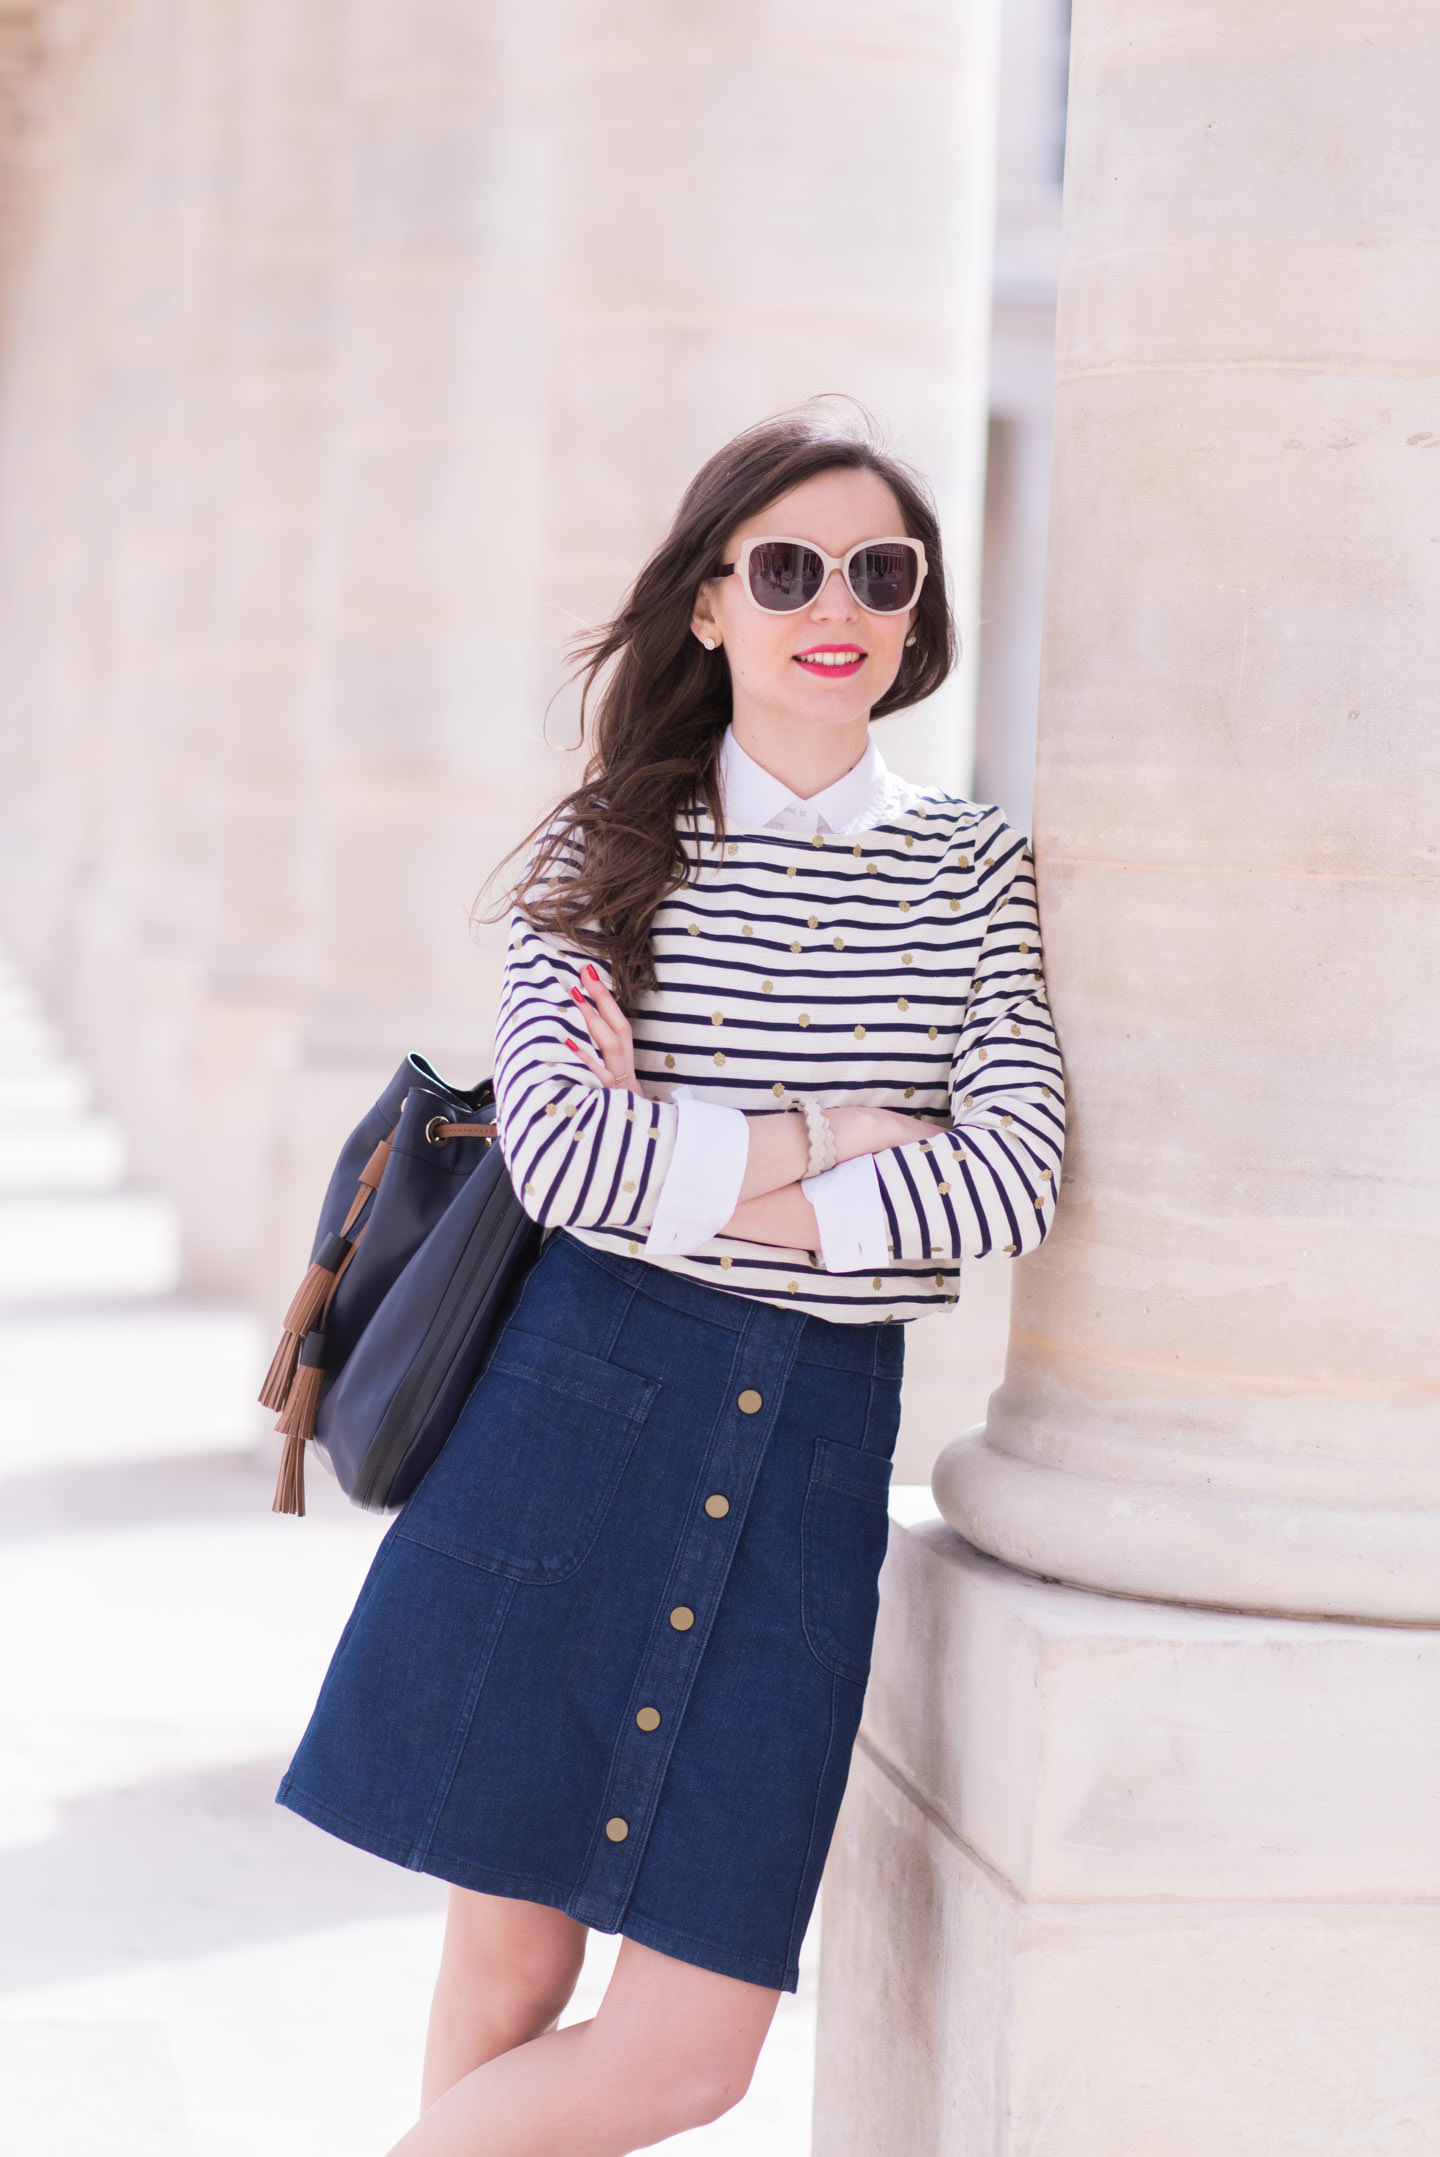 Blog-Mode-And-The-City-Looks-Le-Printemps-en-Boden-4